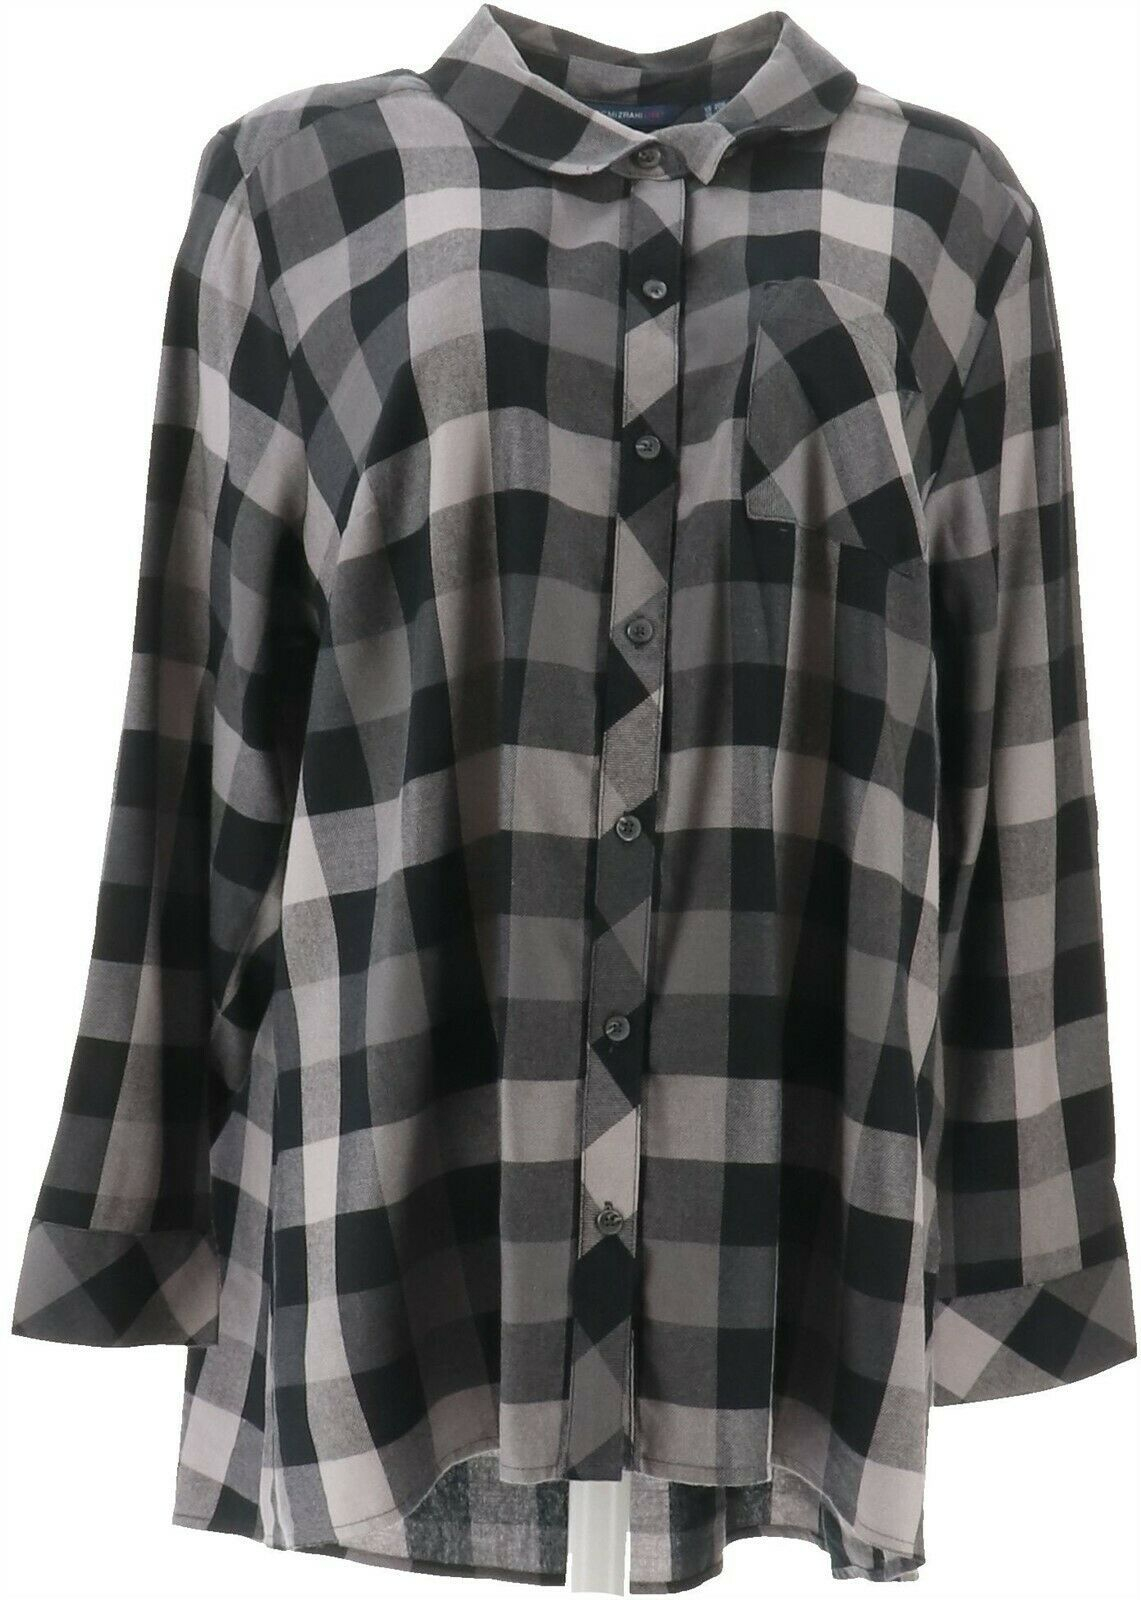 Primary image for Isaac Mizrahi TRUE DENIM Plaid Button Up Shirt Black 12 NEW A367580